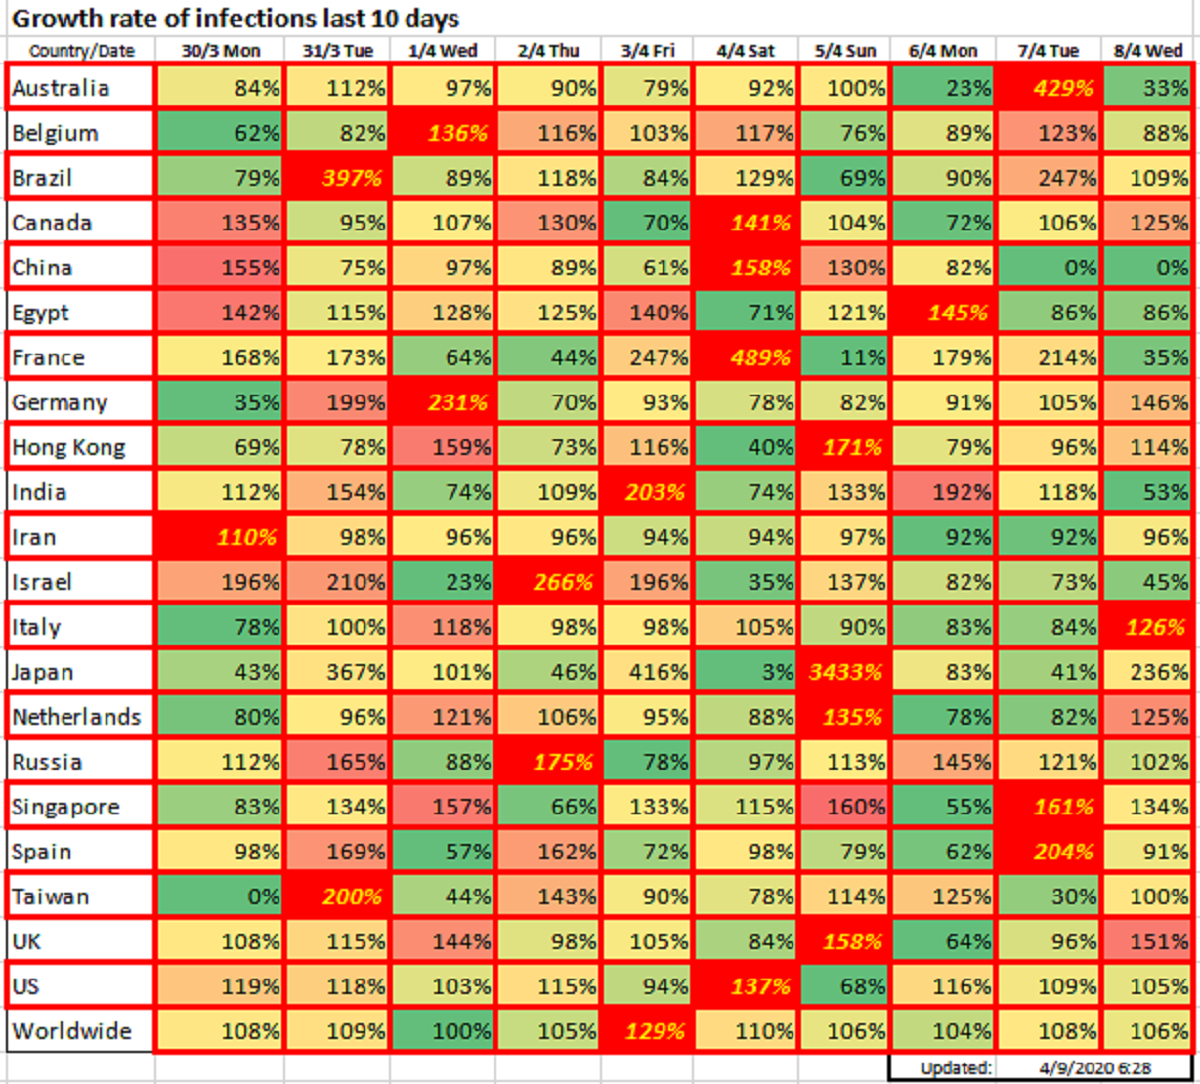 Growth rate of infections the last 10 days, April 9 2020